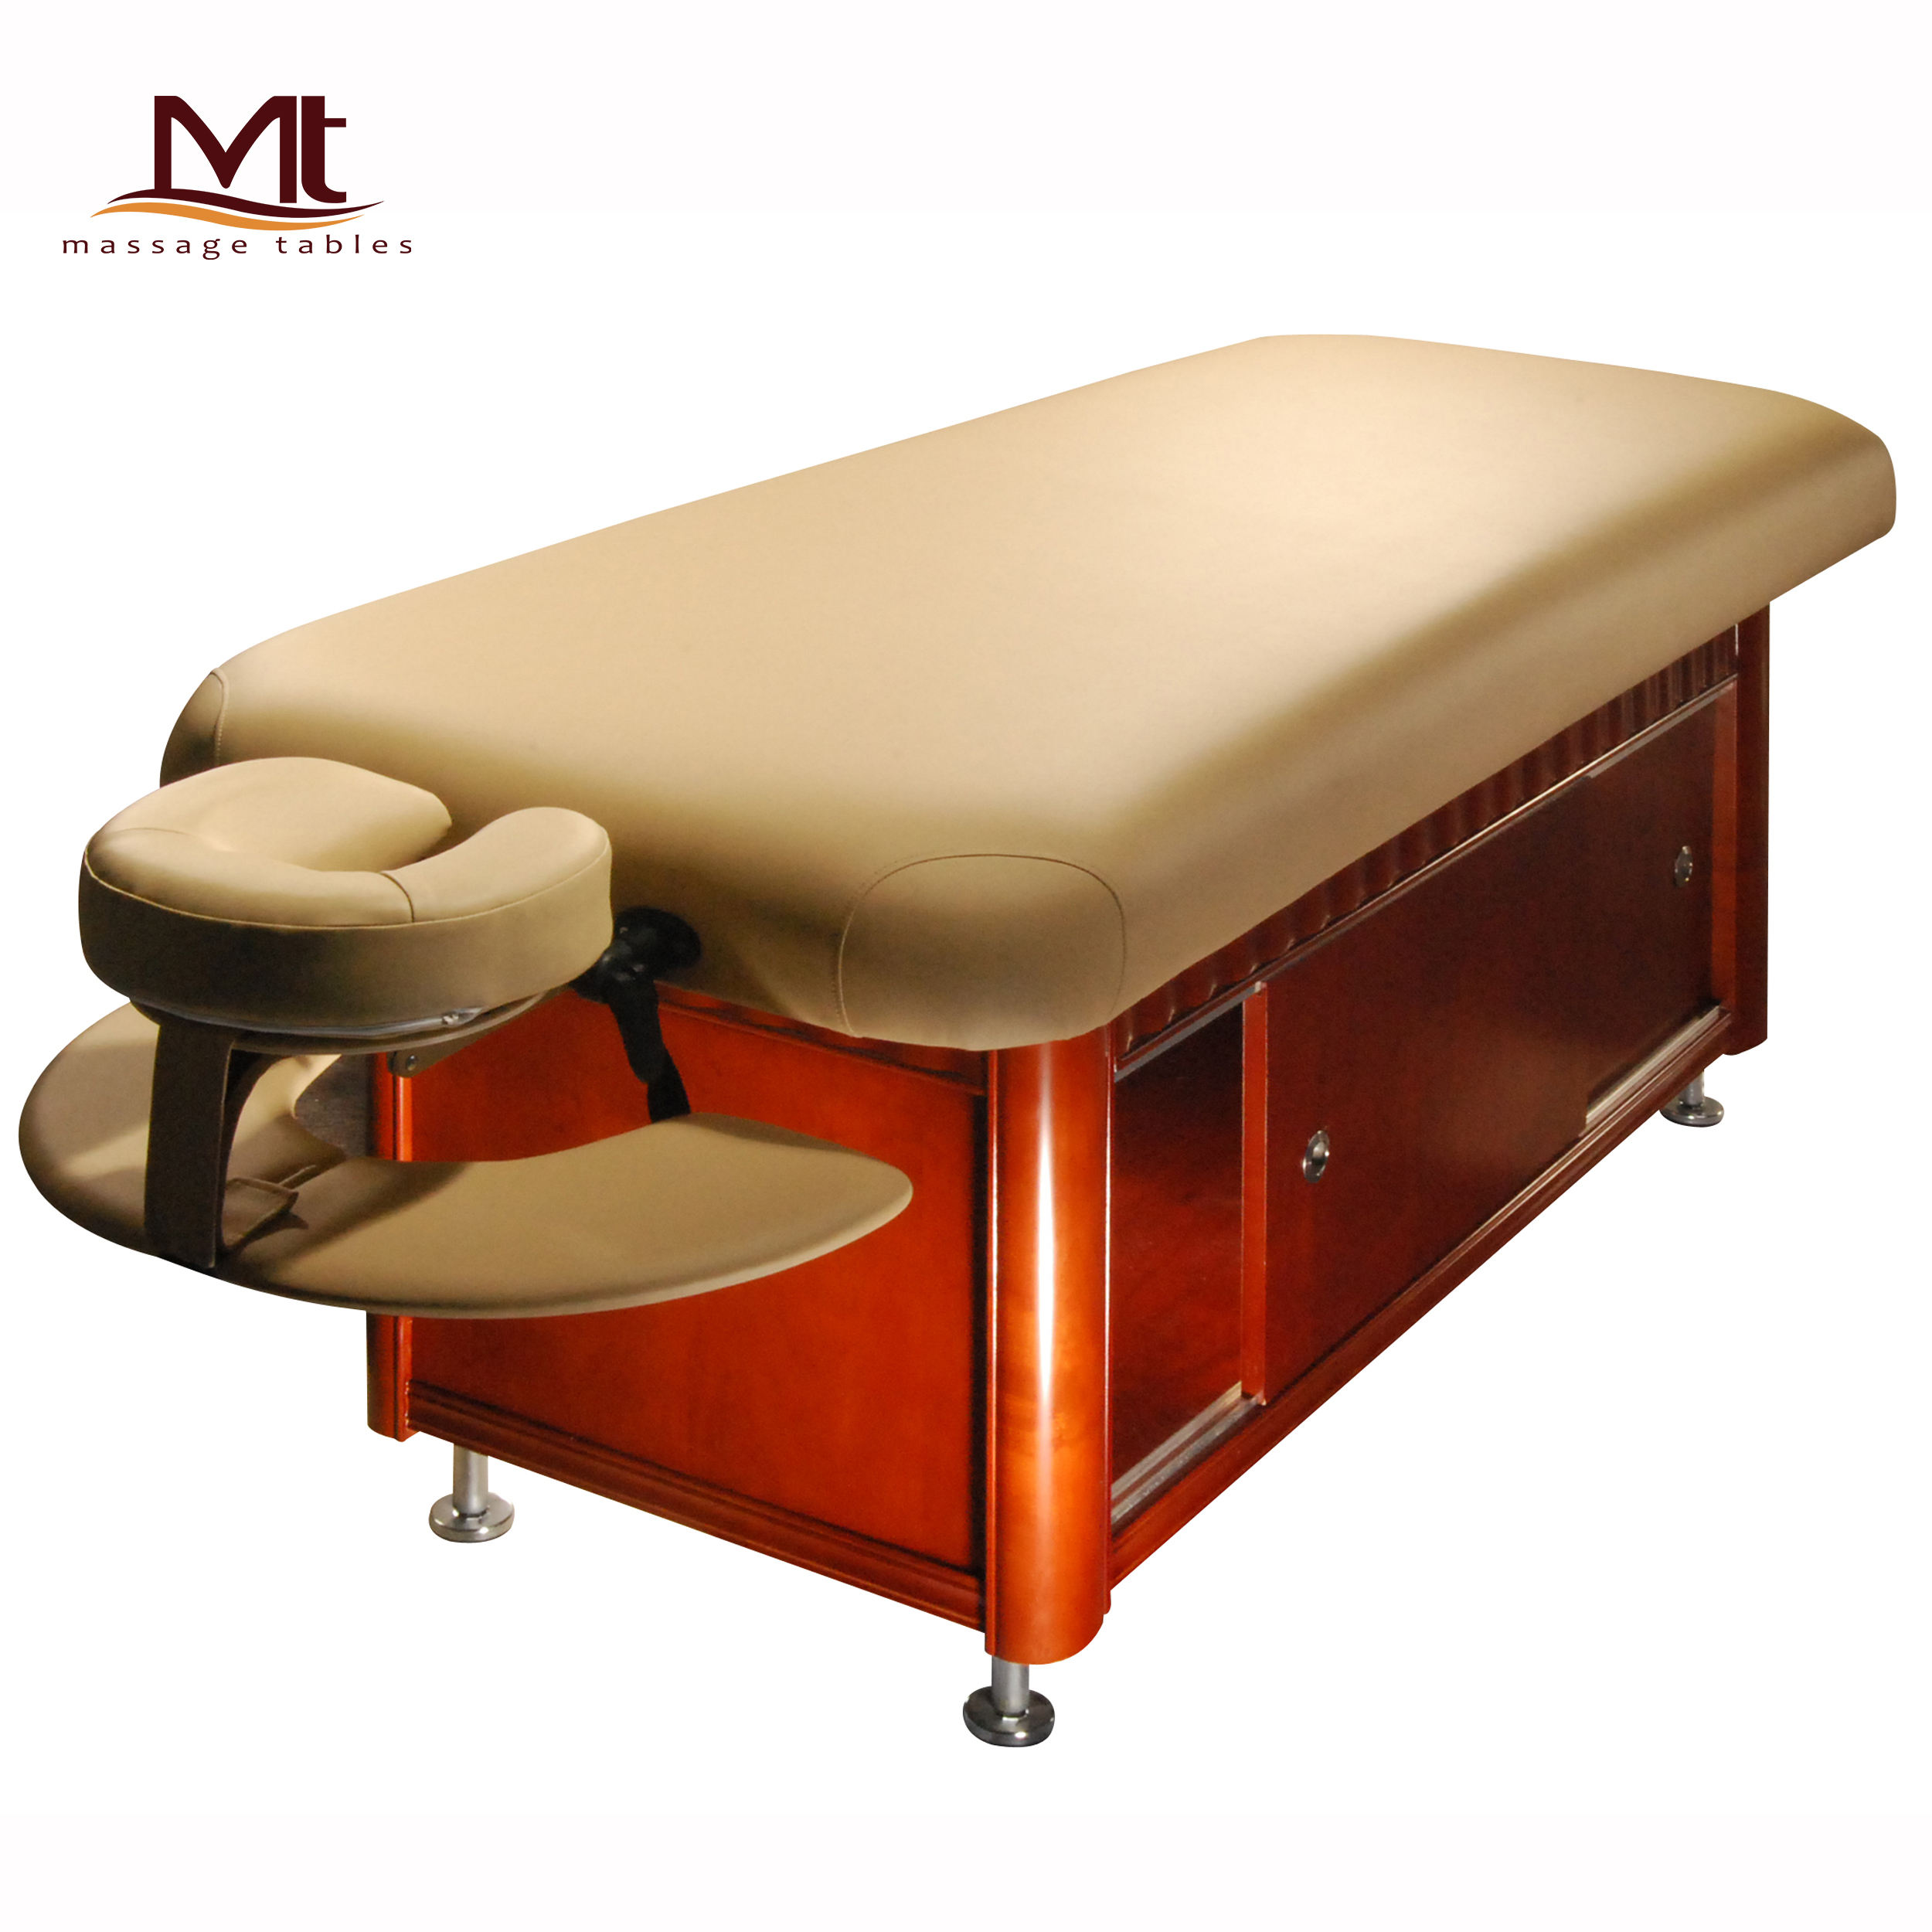 Malibu-Fla Wooden massage table stationary massage table beauty bed china folding massage table salon furniture